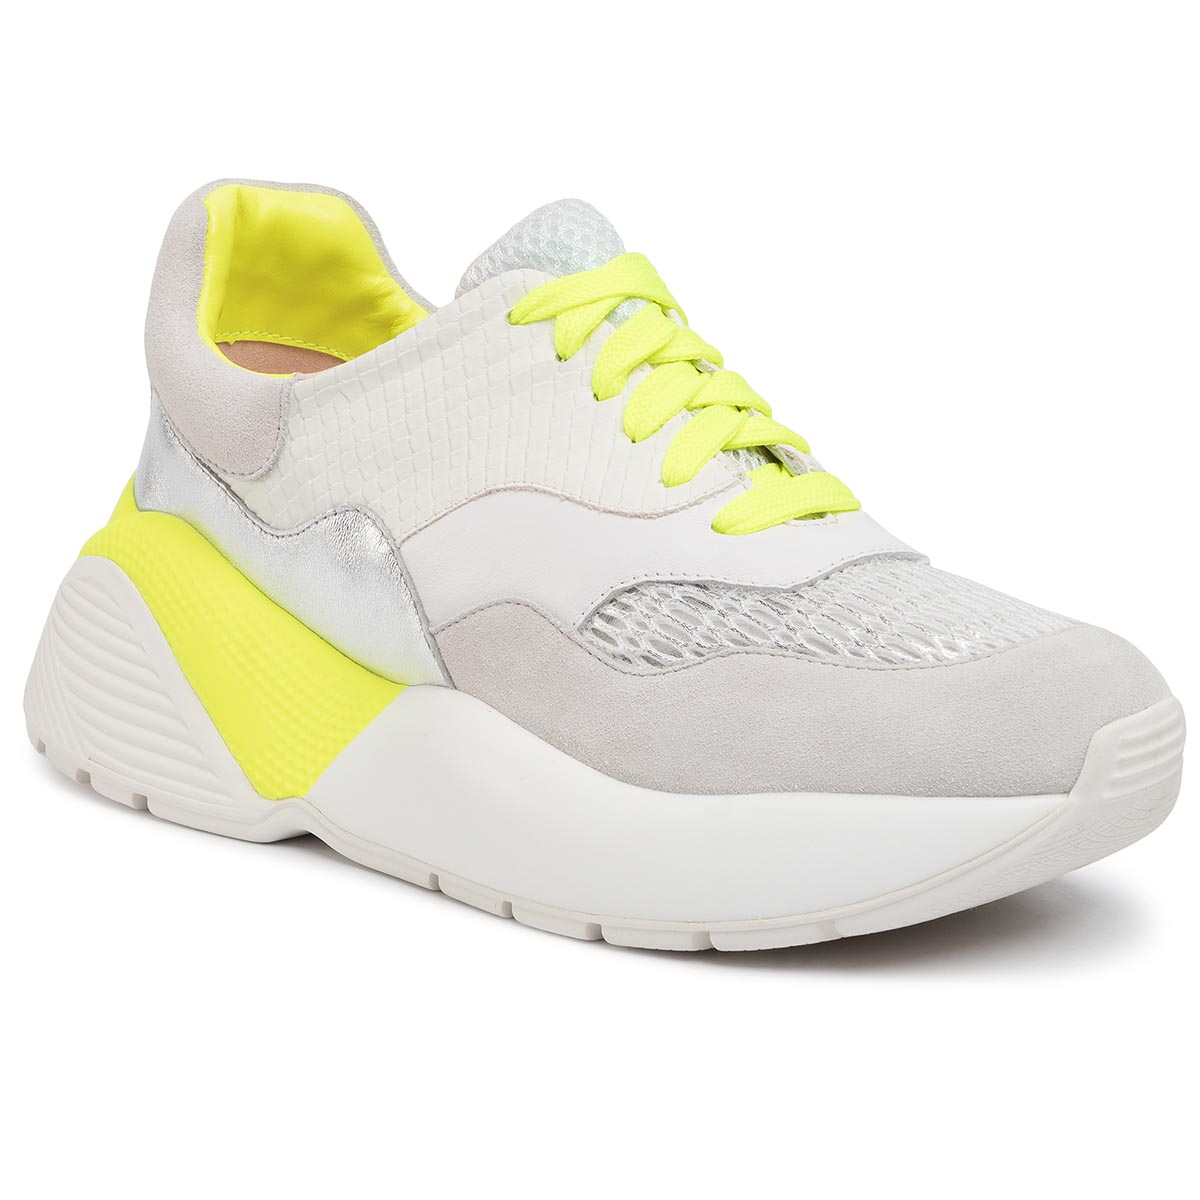 Sneakers TWINSET - Running 201TCP150 Bic.Ottico/Giallo Fluo 04830